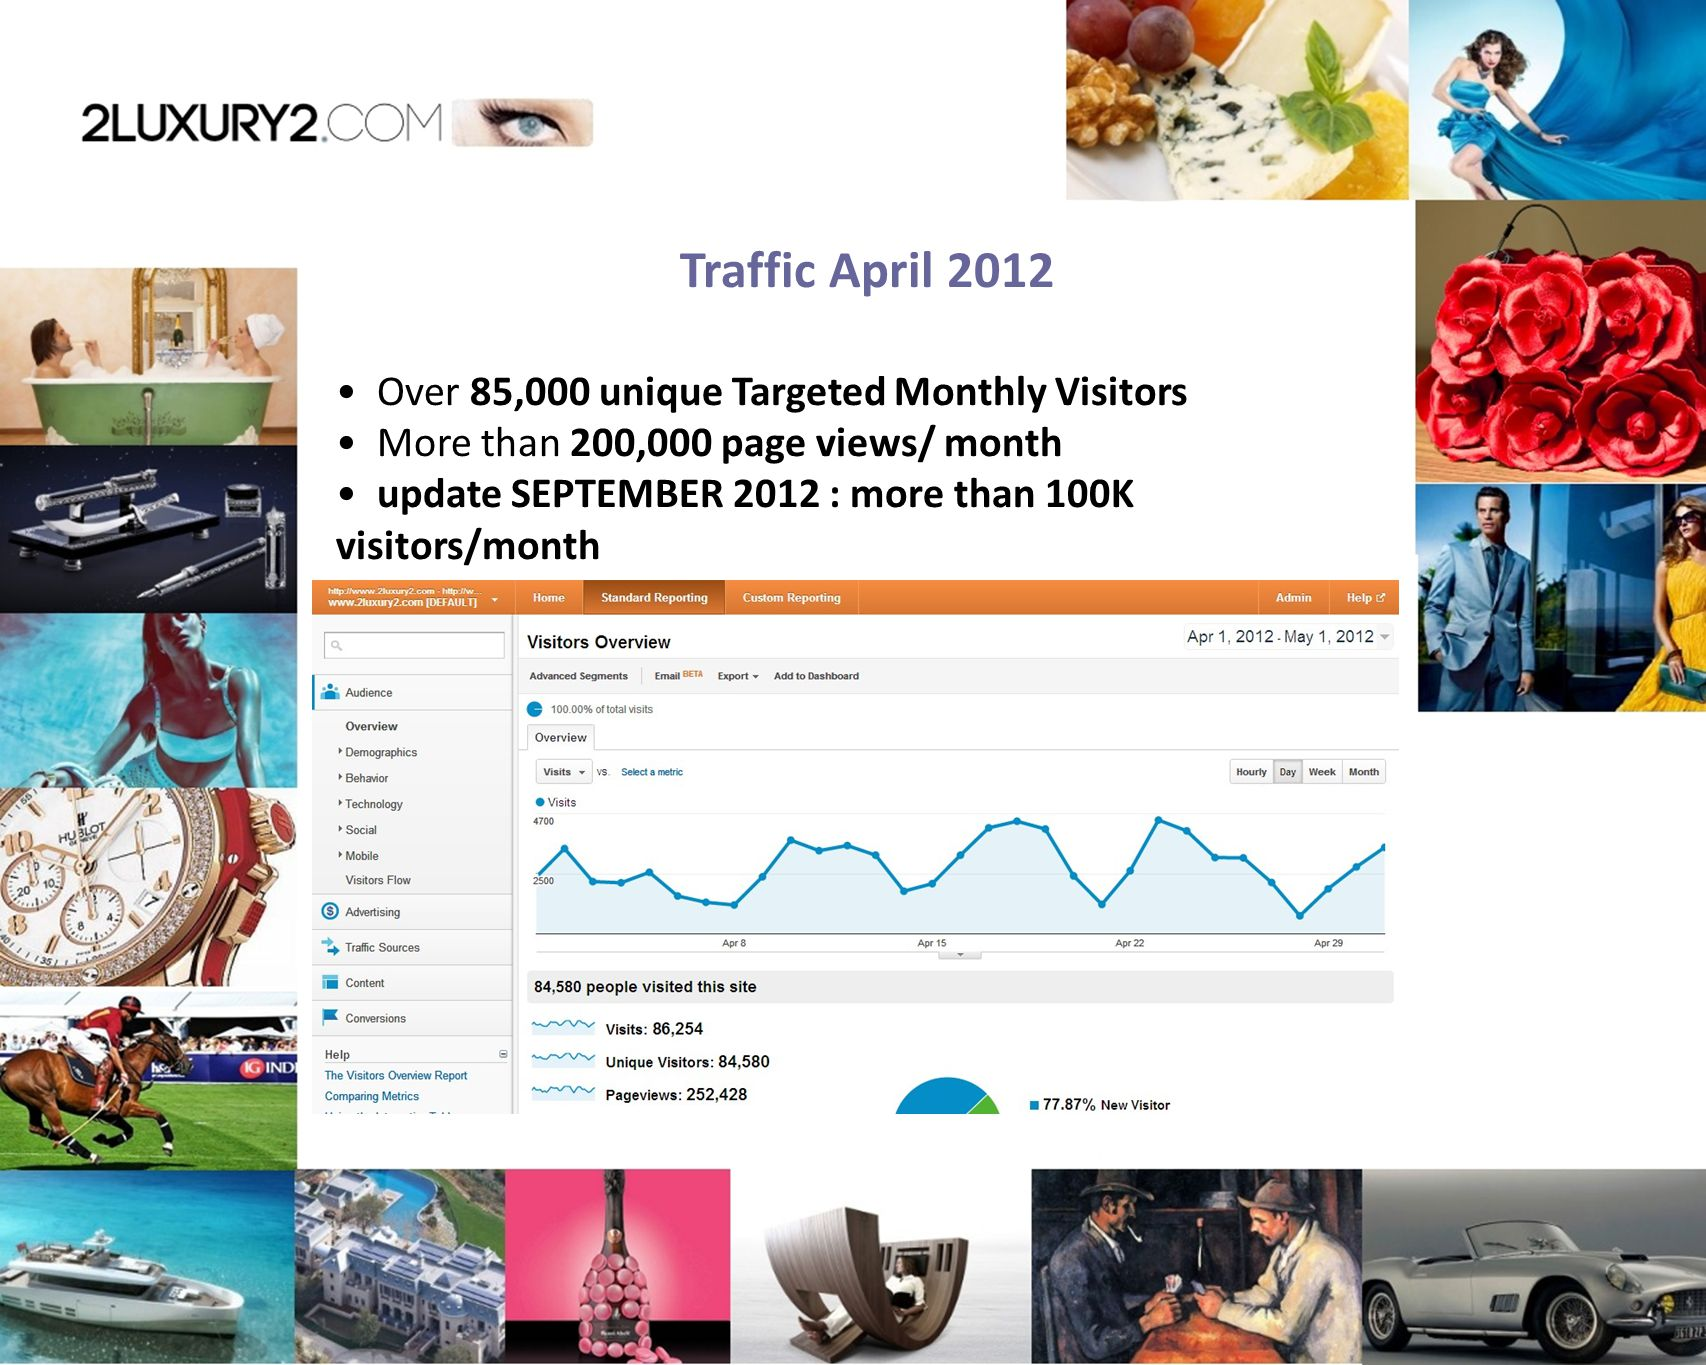 Traffic April 2012 Over 85,000 unique Targeted Monthly Visitors More than 200,000 page views/ month update SEPTEMBER 2012 : more than 100K visitors/month